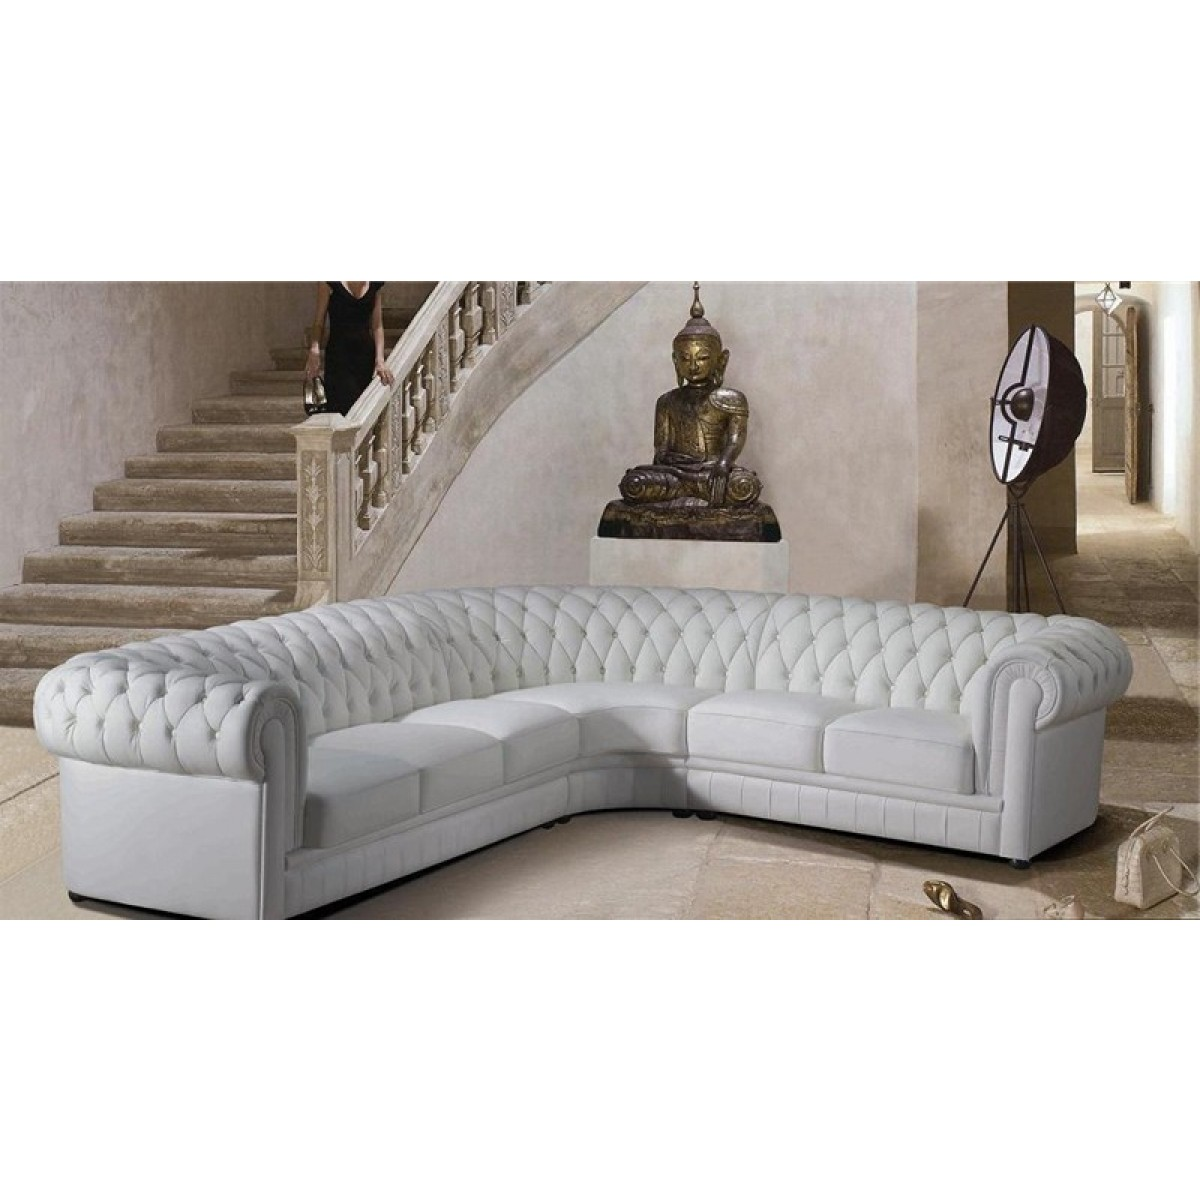 grand canap d 39 angle en cuir pleine fleur chesterfield. Black Bedroom Furniture Sets. Home Design Ideas